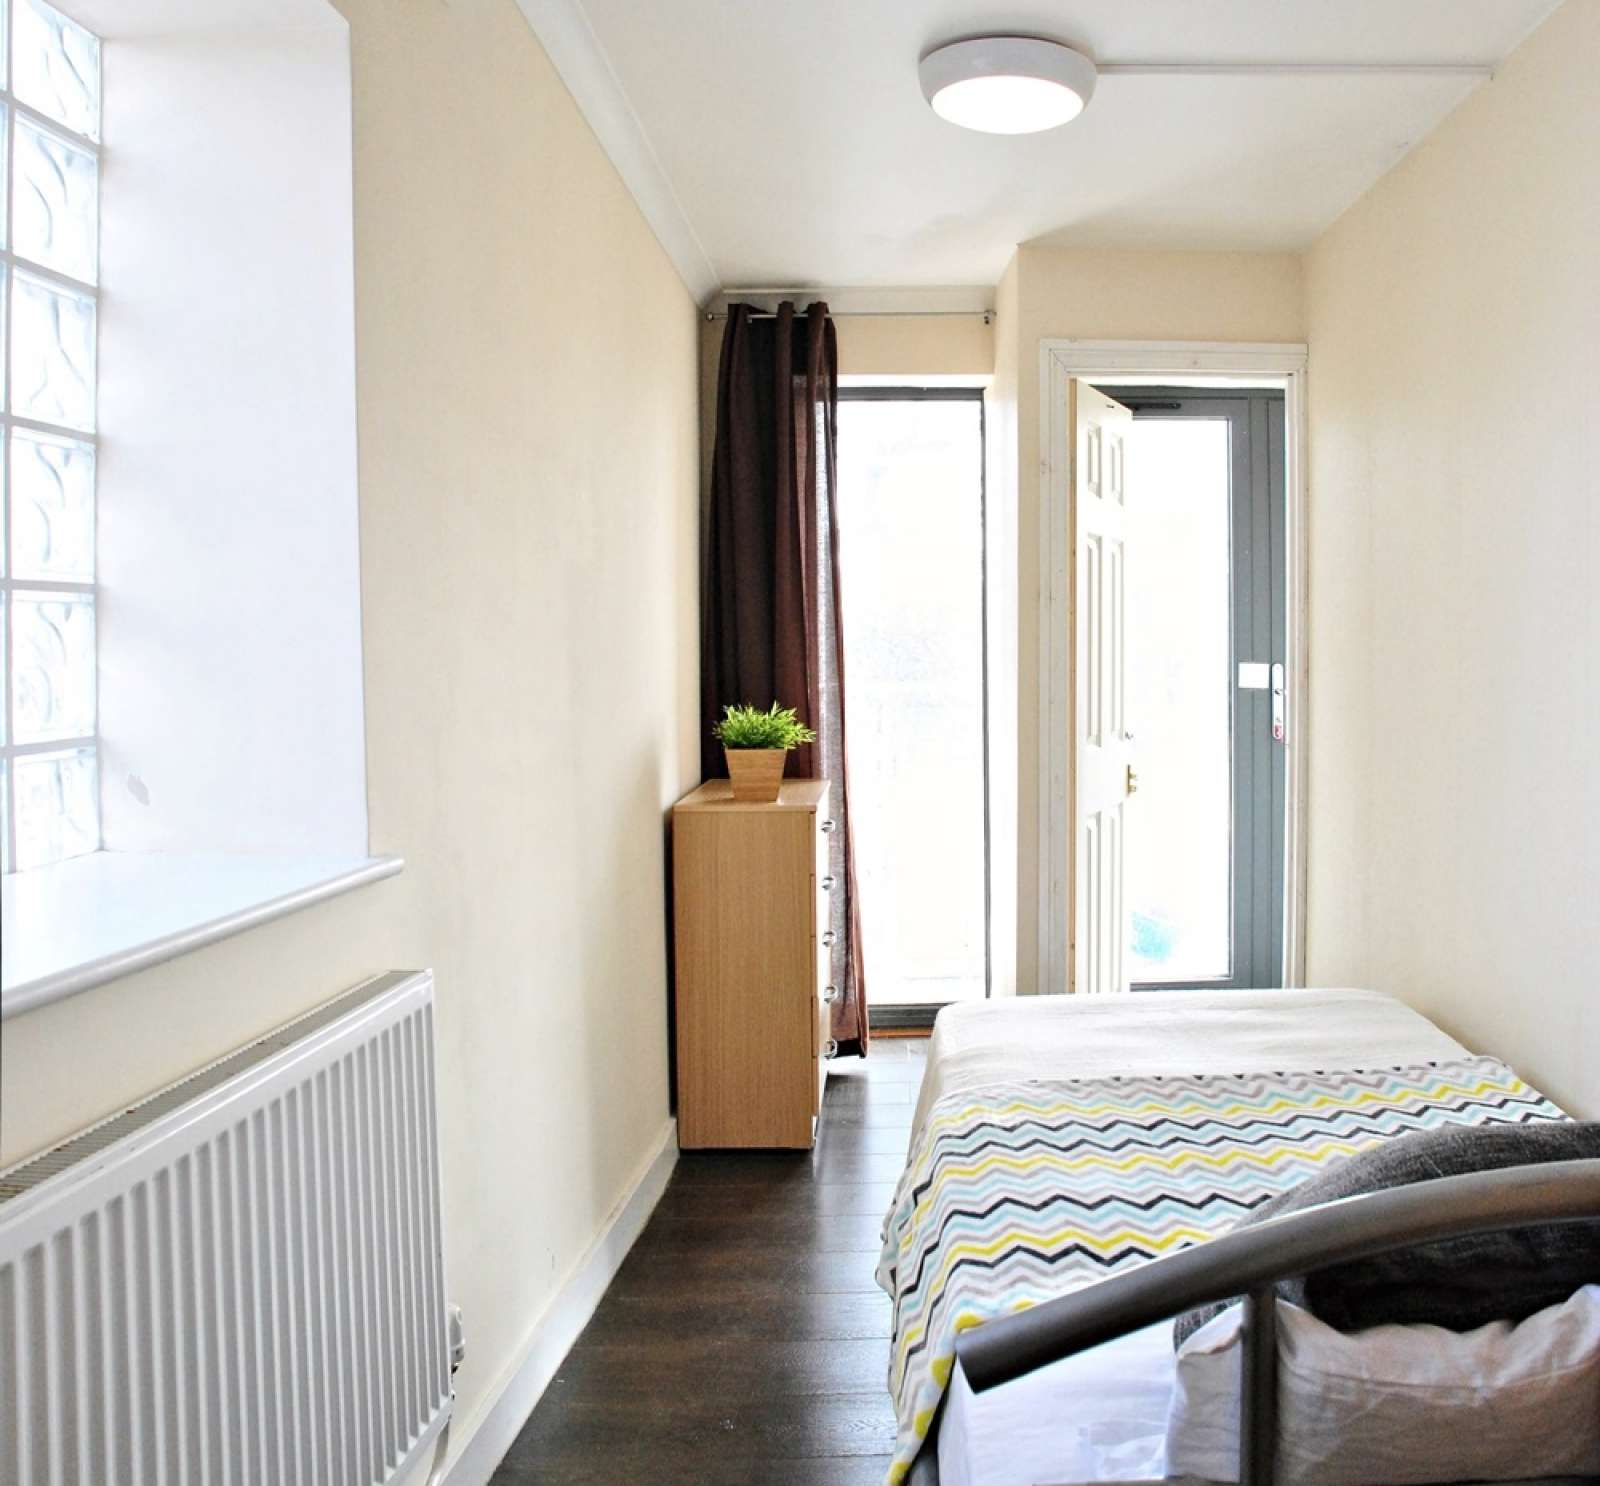 double bed in rooms to rent in 3 bedroom flat with balcony in